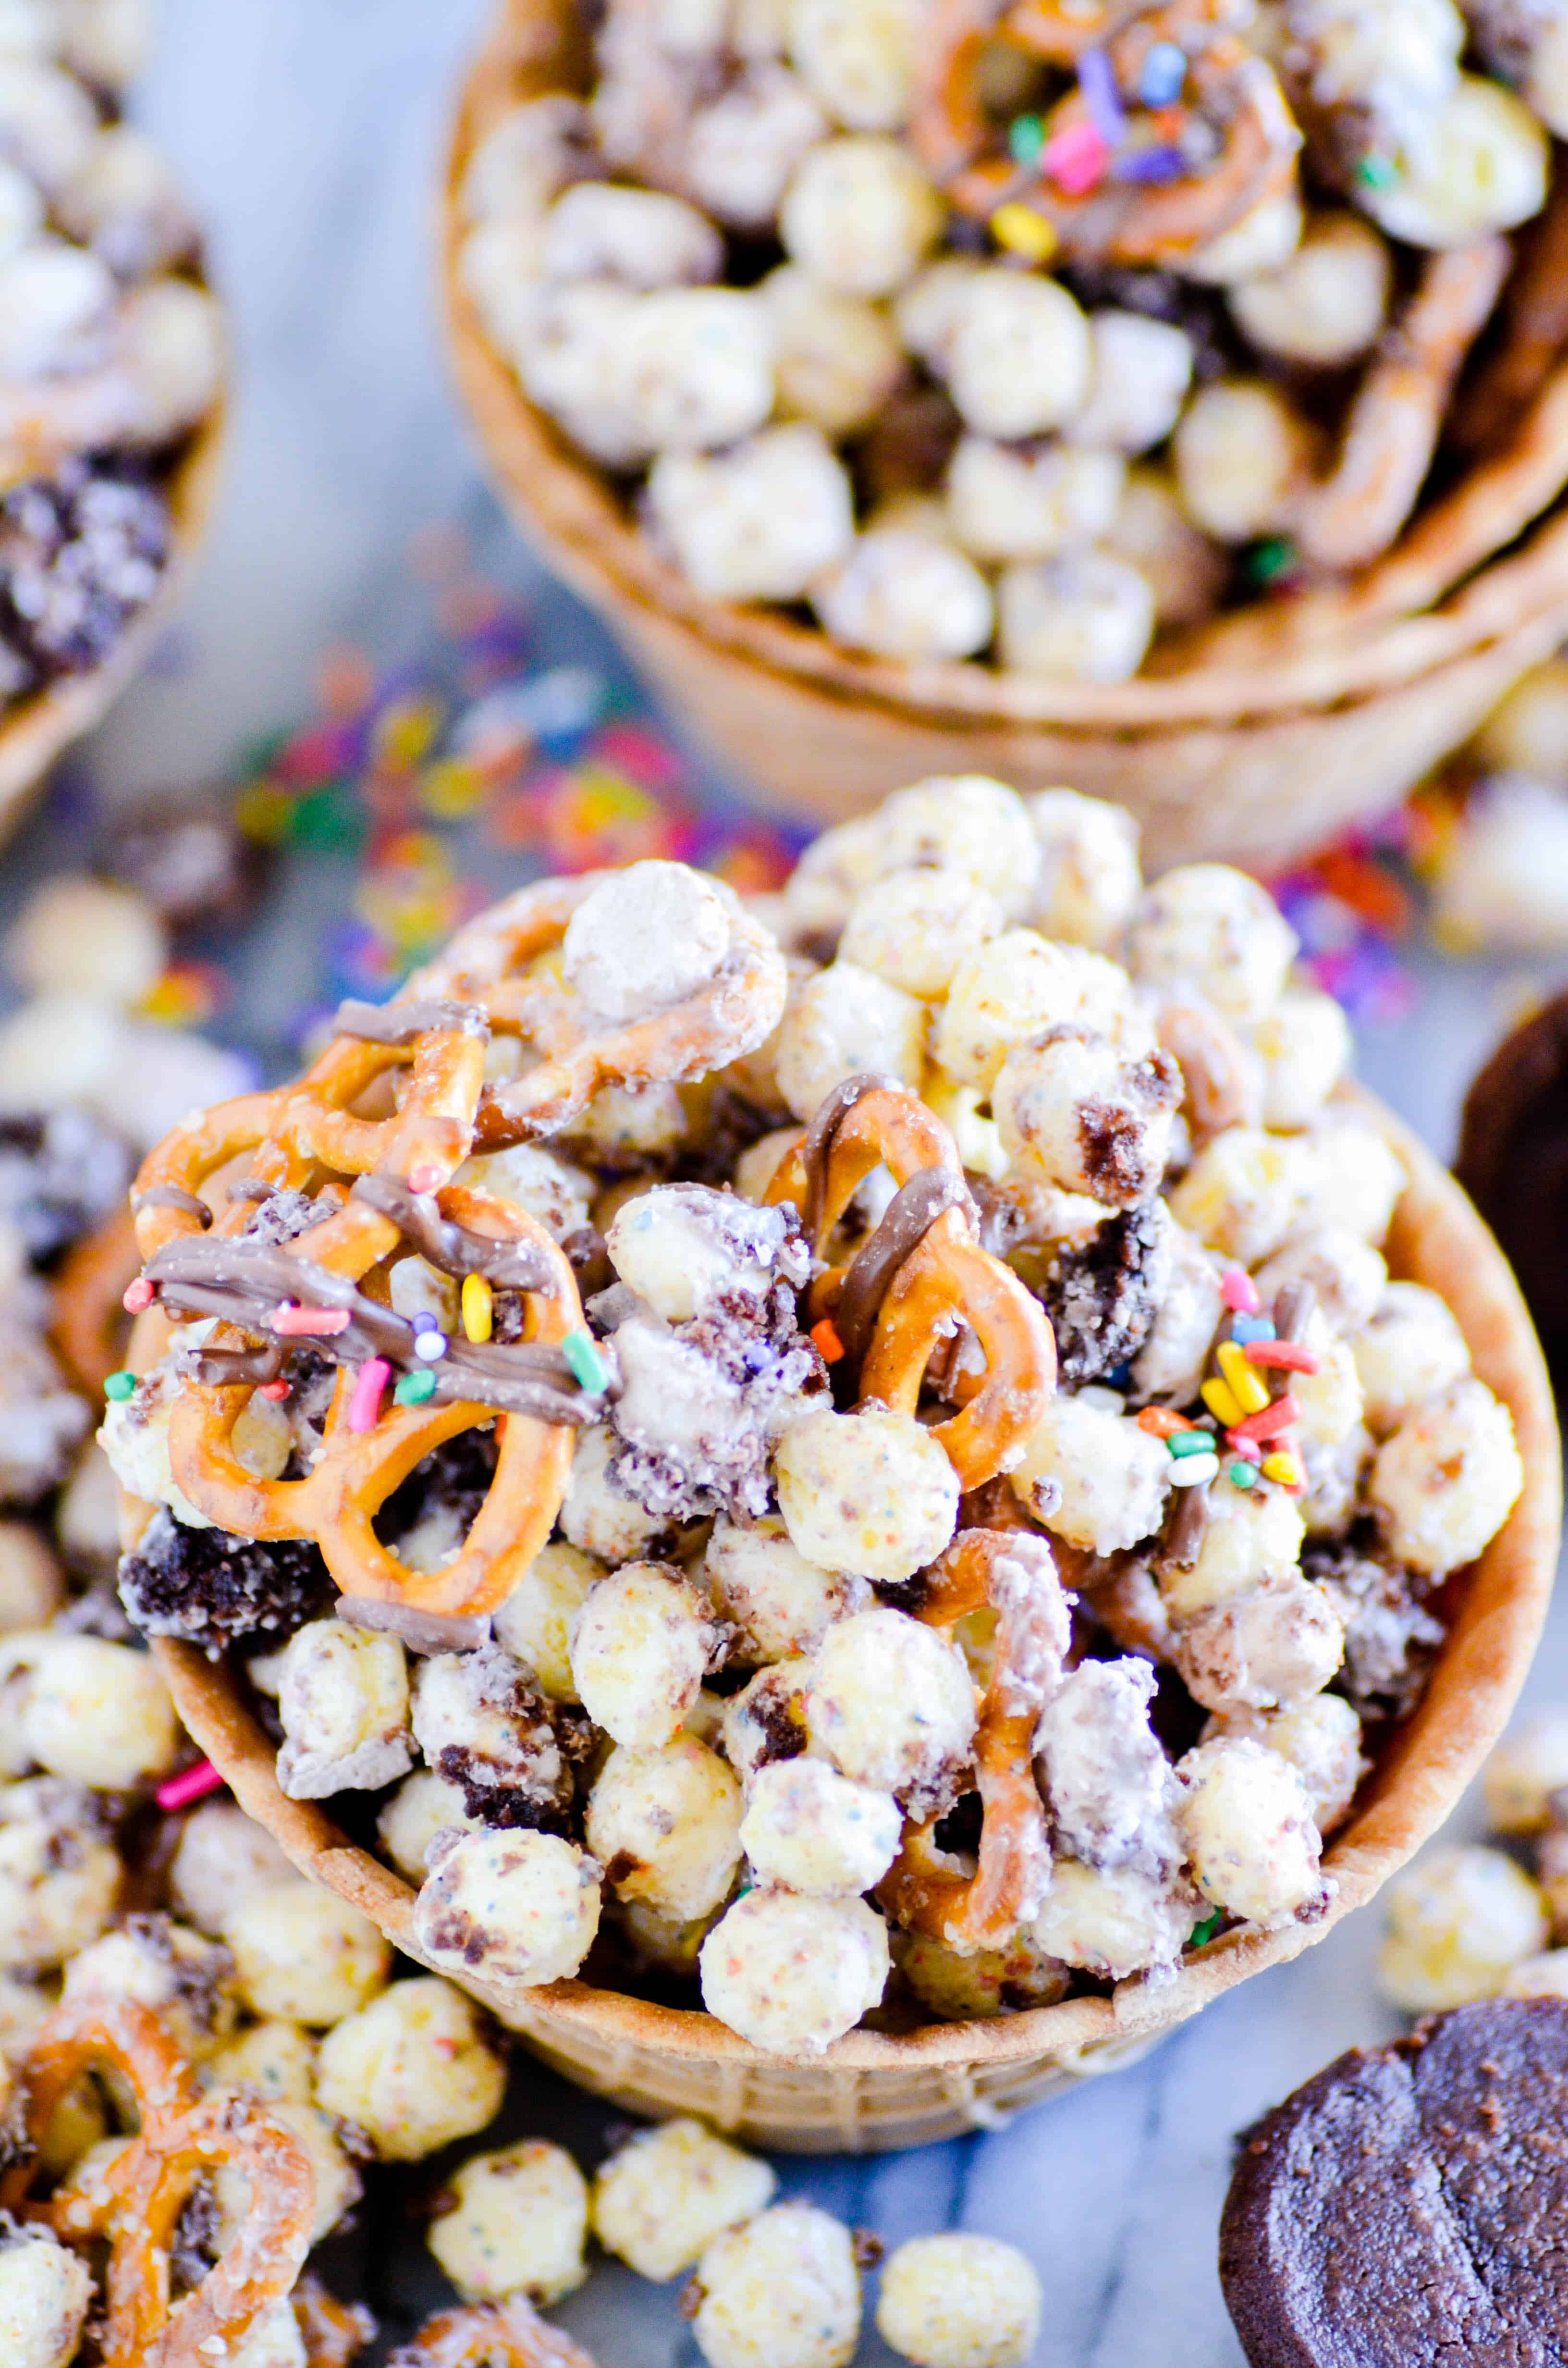 If you love Birthday Cake Remix at Coldstone Creamery, you are going to LOVE this Birthday Cake Remix Snack Mix.